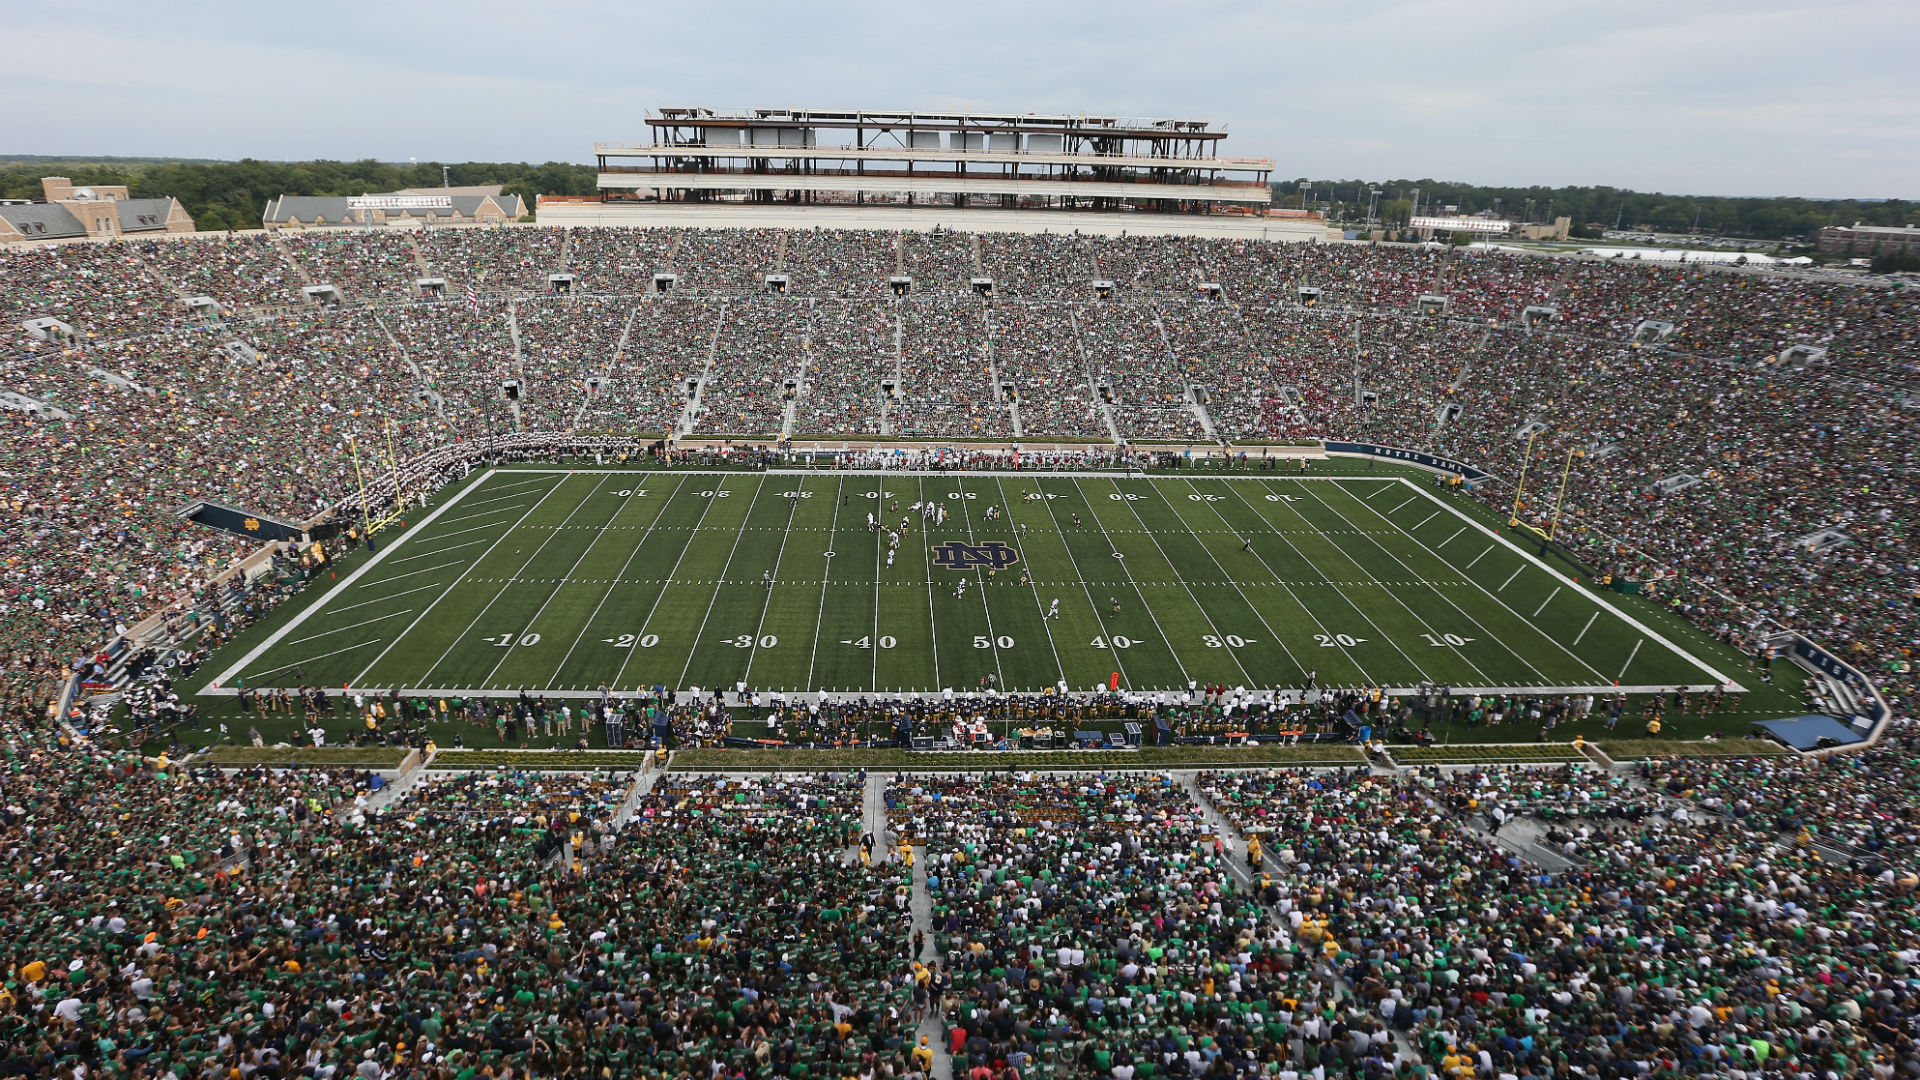 Nhl announces winter classic at notre dame stadium between bruins and blackhawks also rh sportingnews